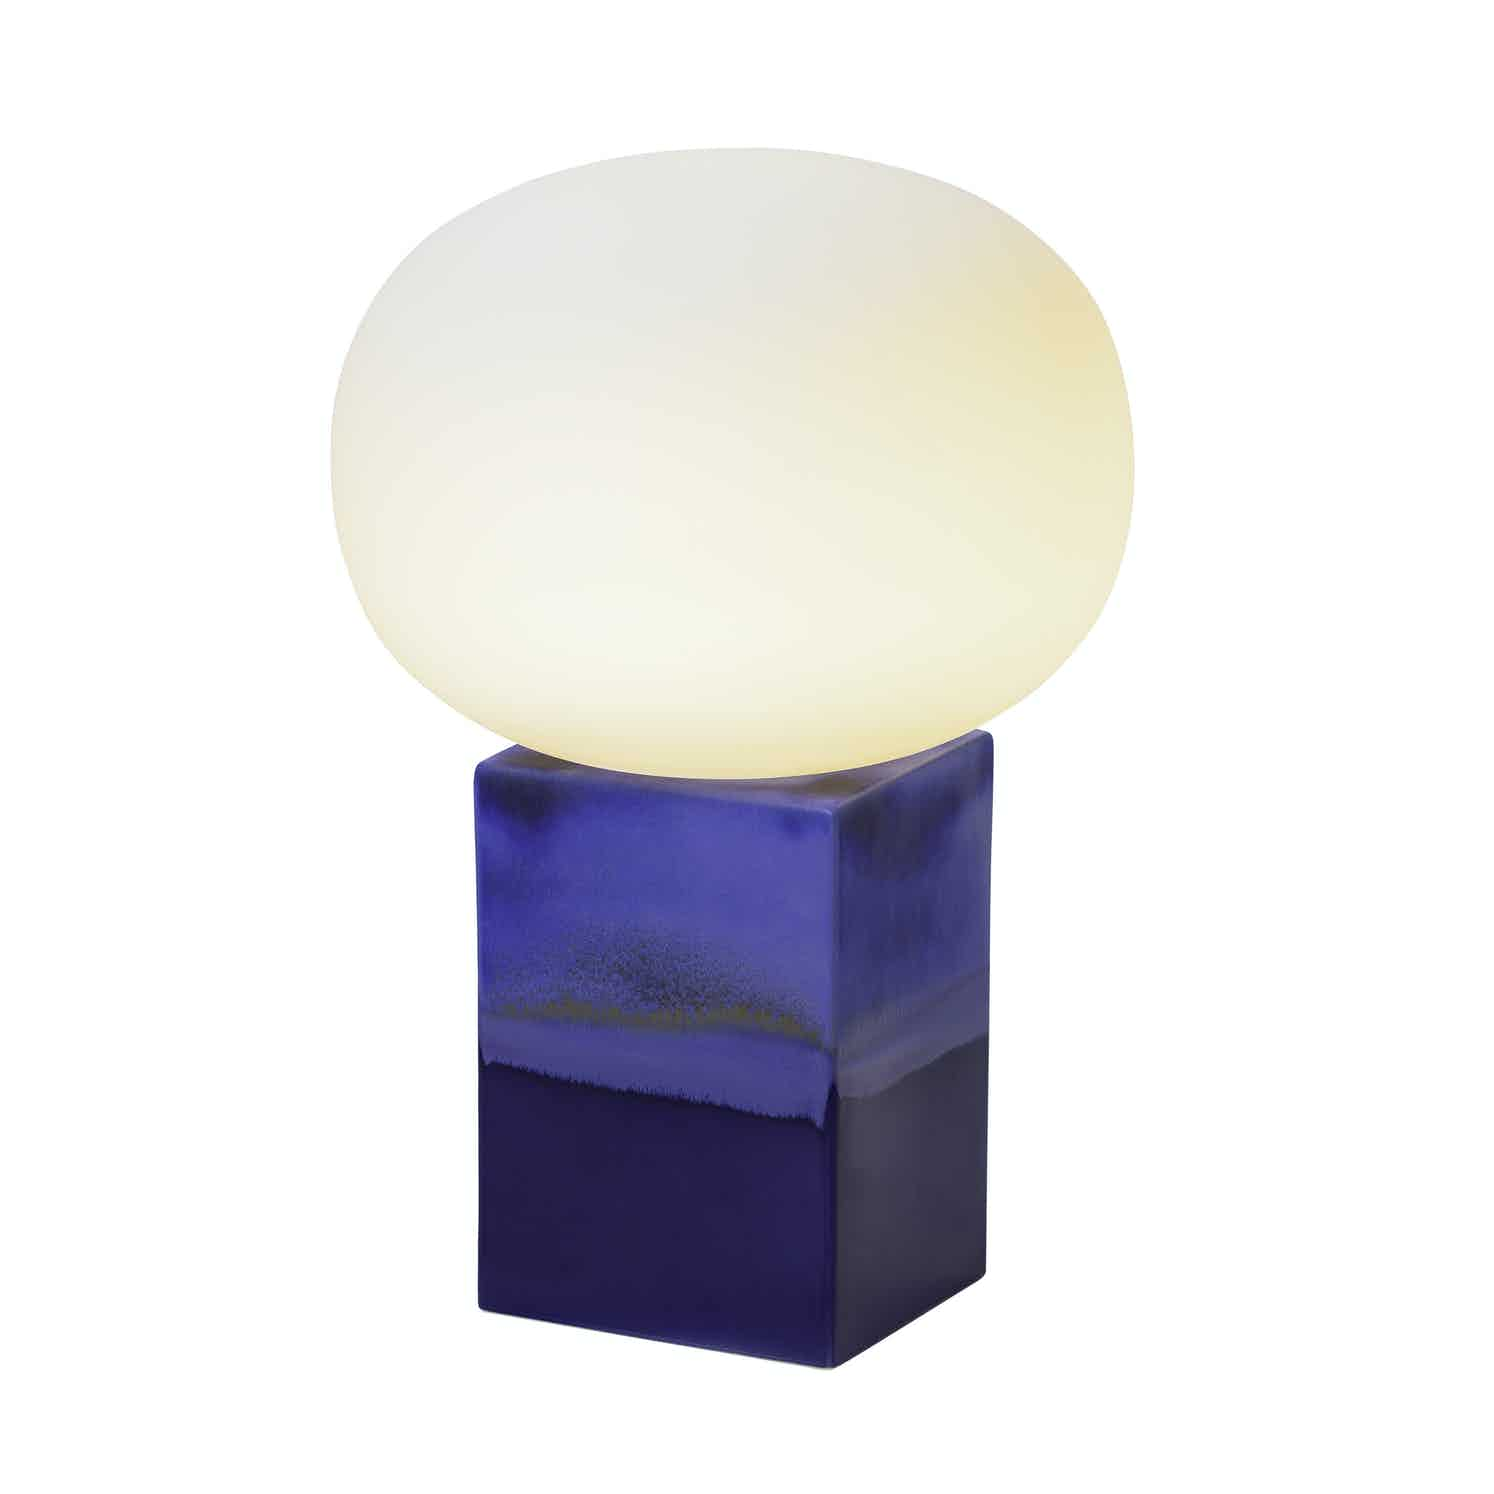 Pulpo-magma-lamp-one-low-blue-base-haute-living